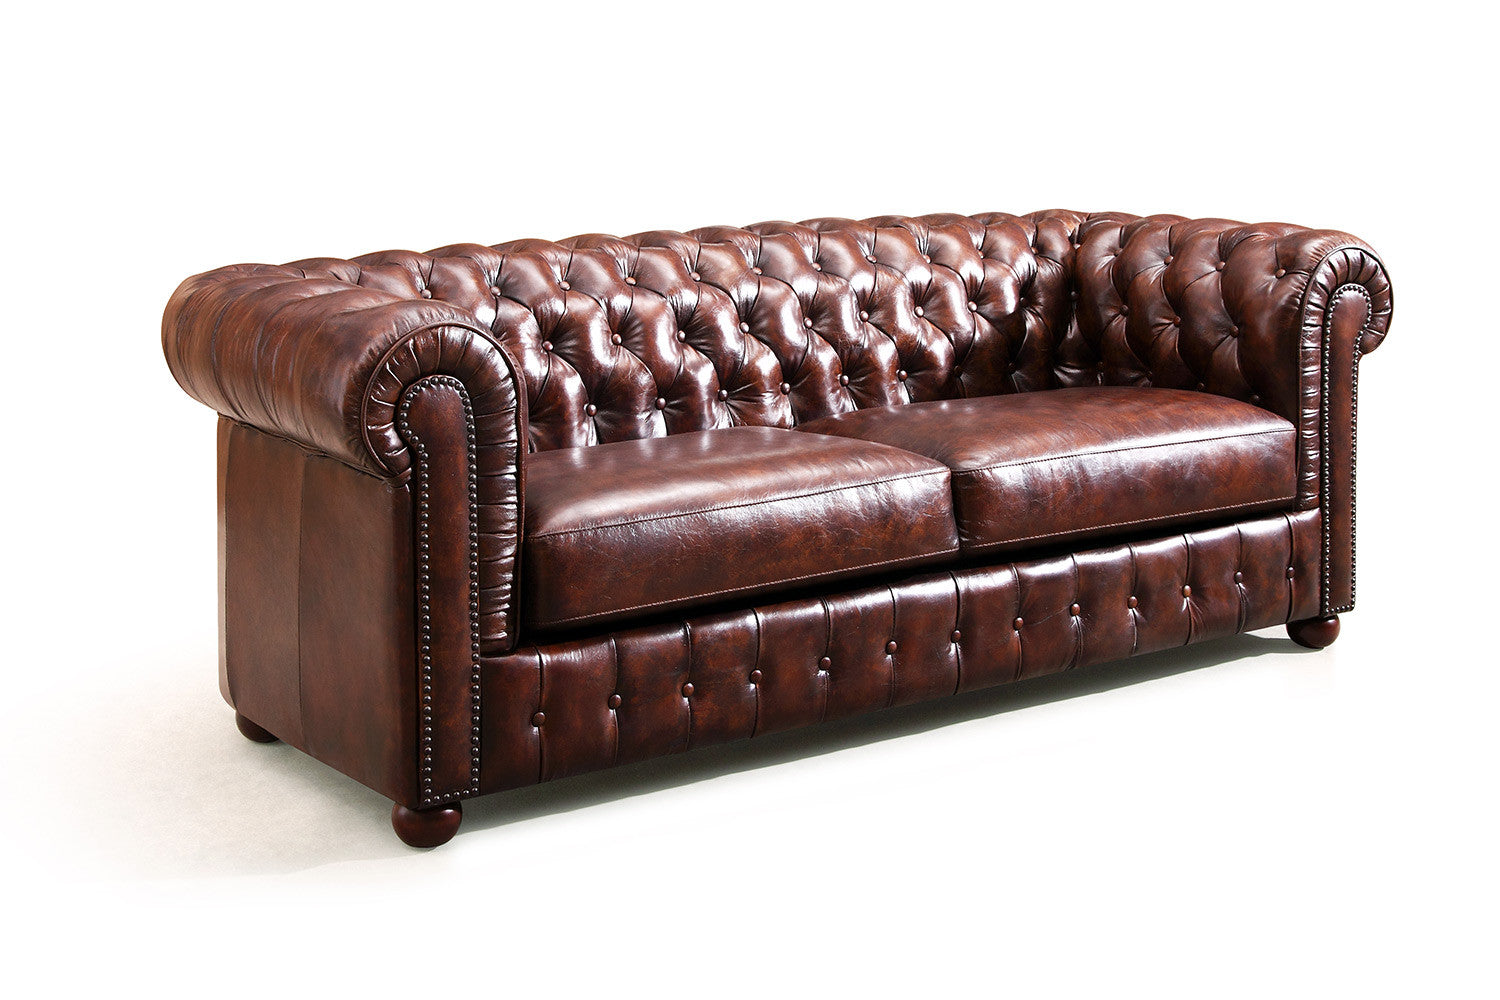 Charmant Chesterfield Sofa By Rose U0026 Moore   Profile View